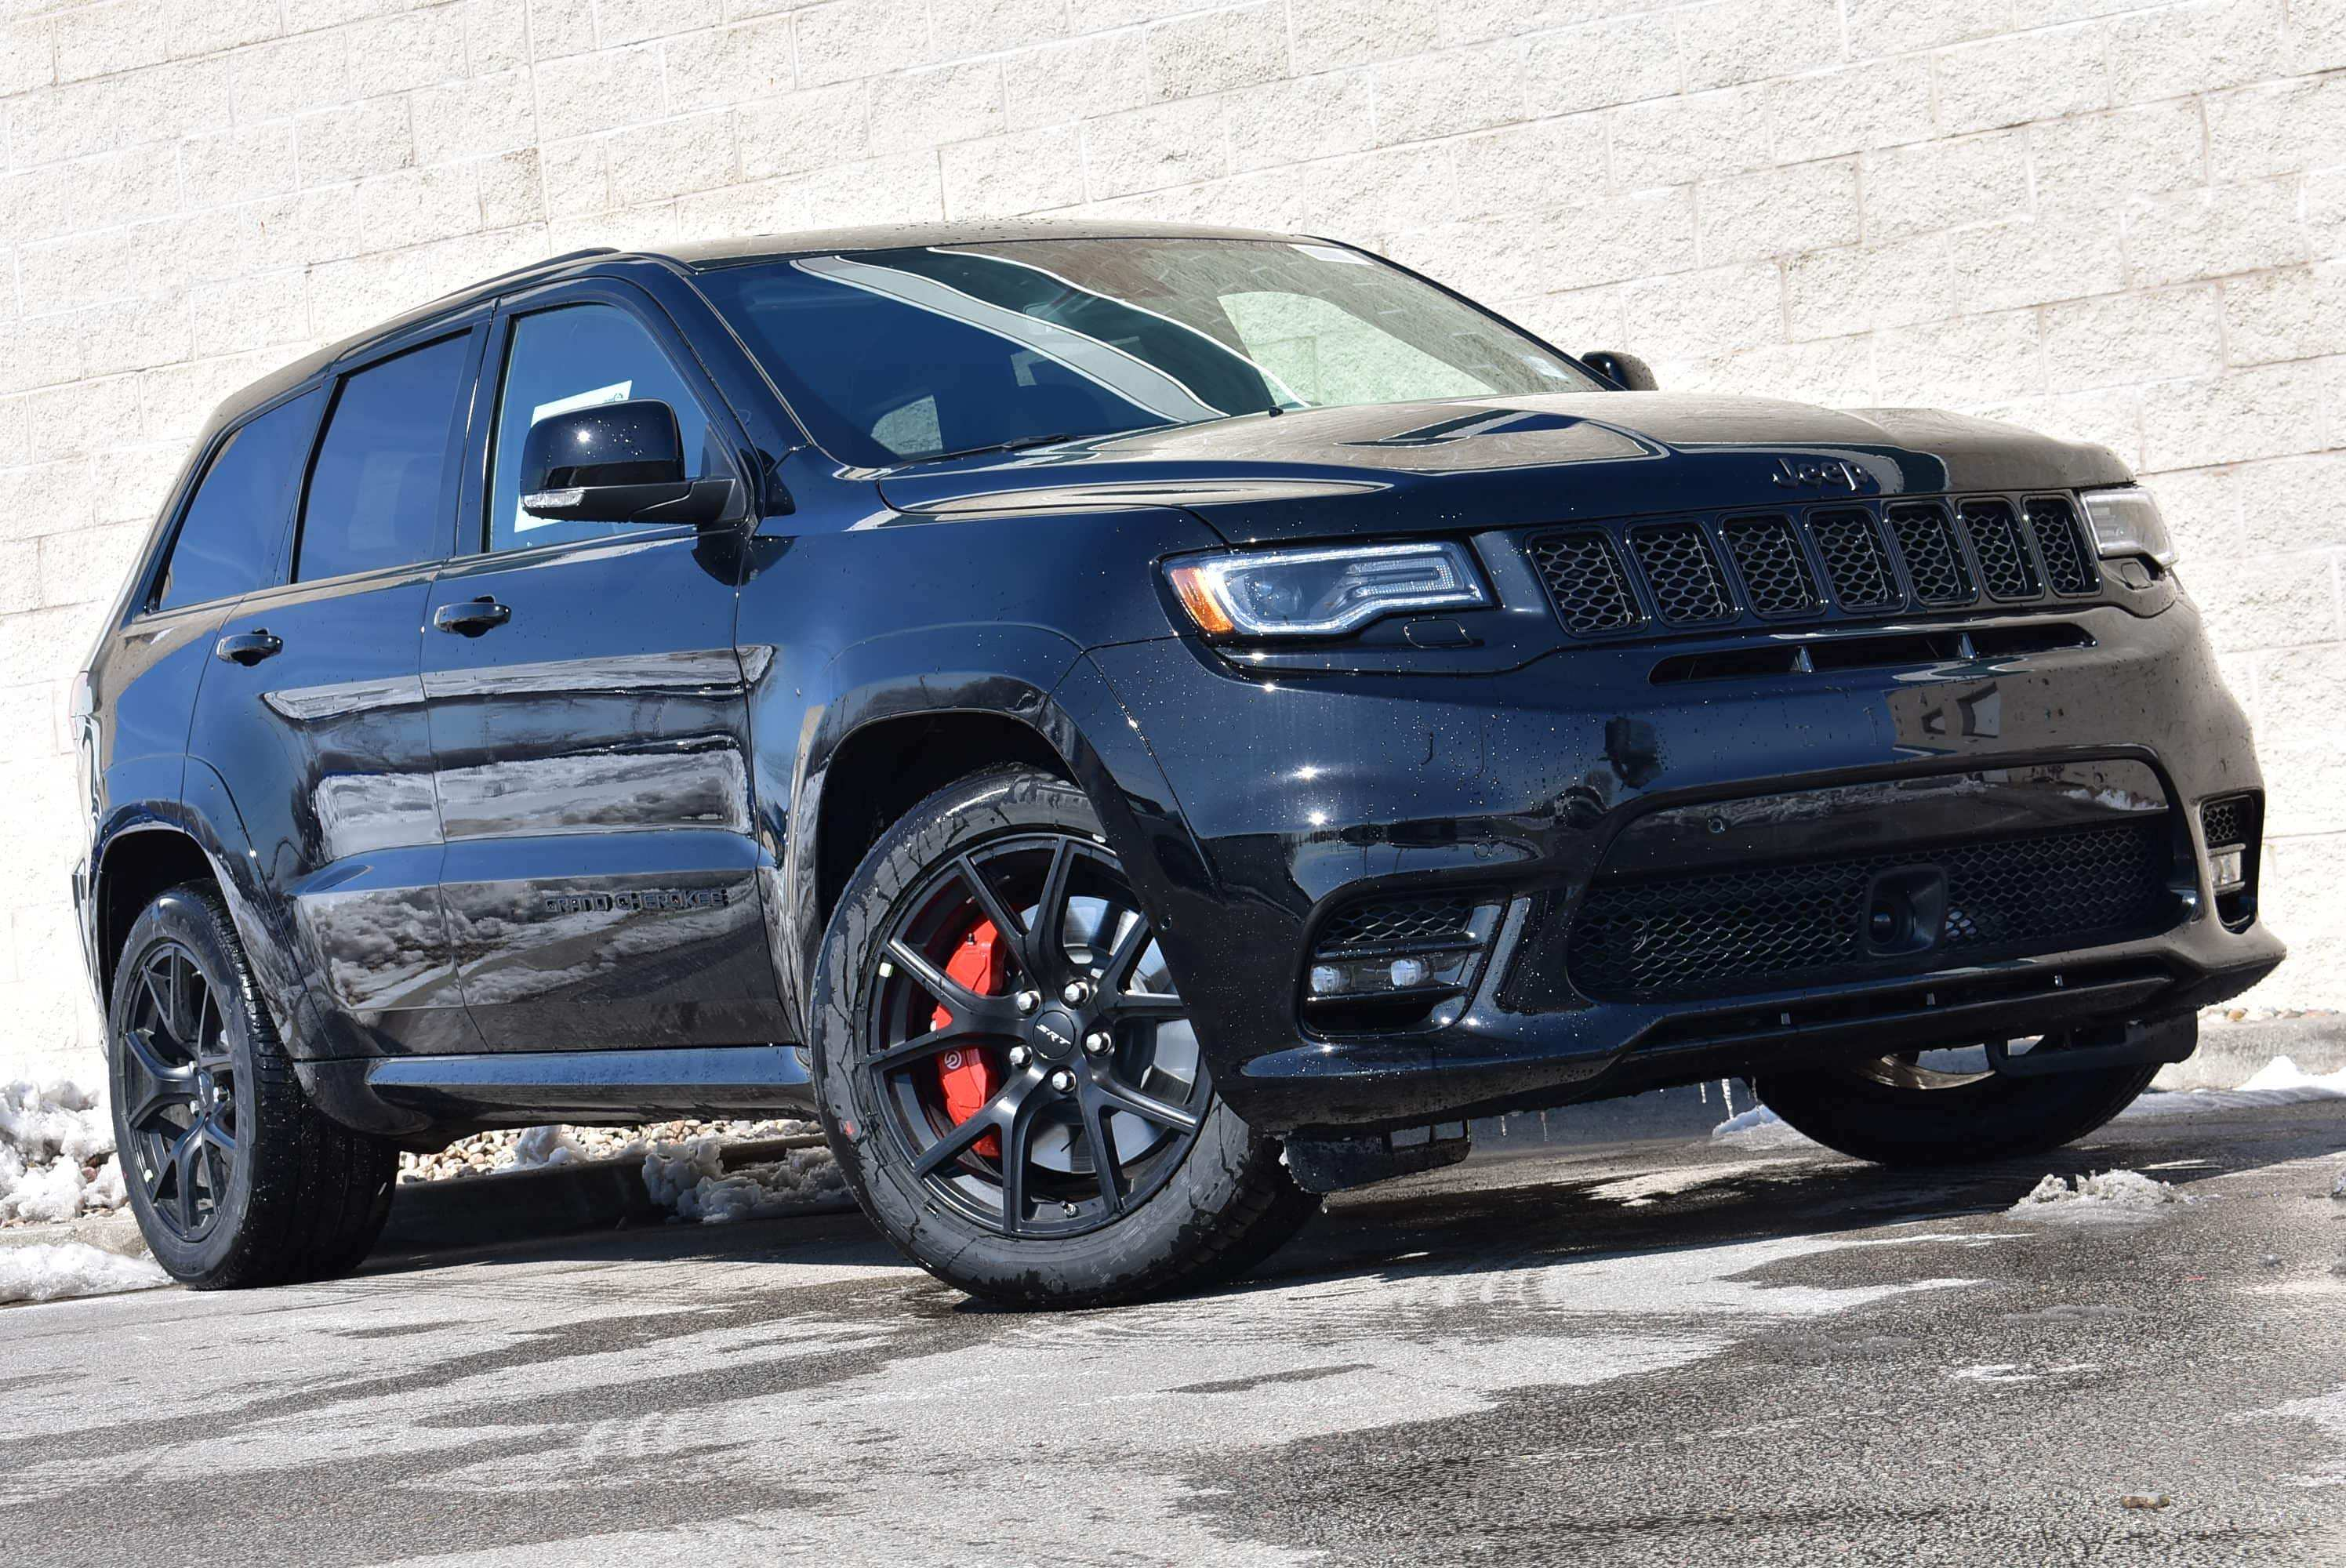 44 All New 2019 Jeep Grand Cherokee Srt8 Style